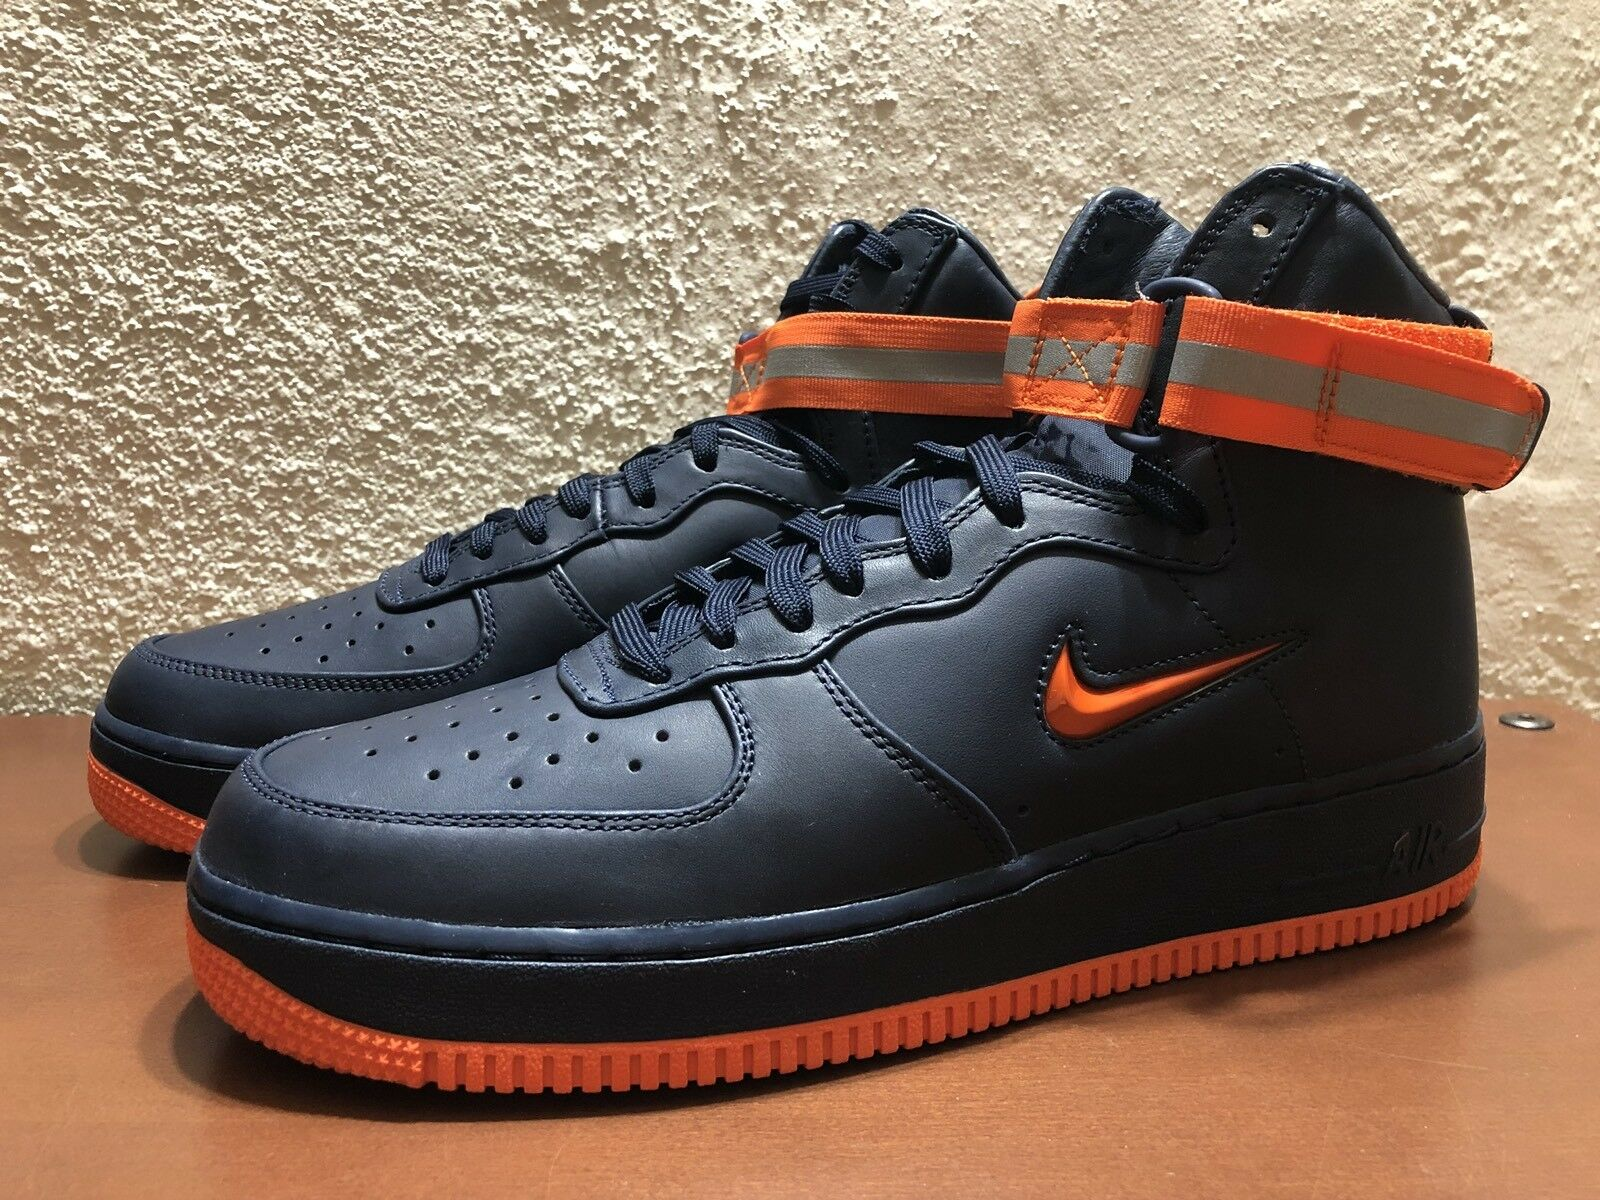 Nike Air Force 1 High Retro PRM QS NYC Finest FDNY Obsidian Orange Taille 9.5